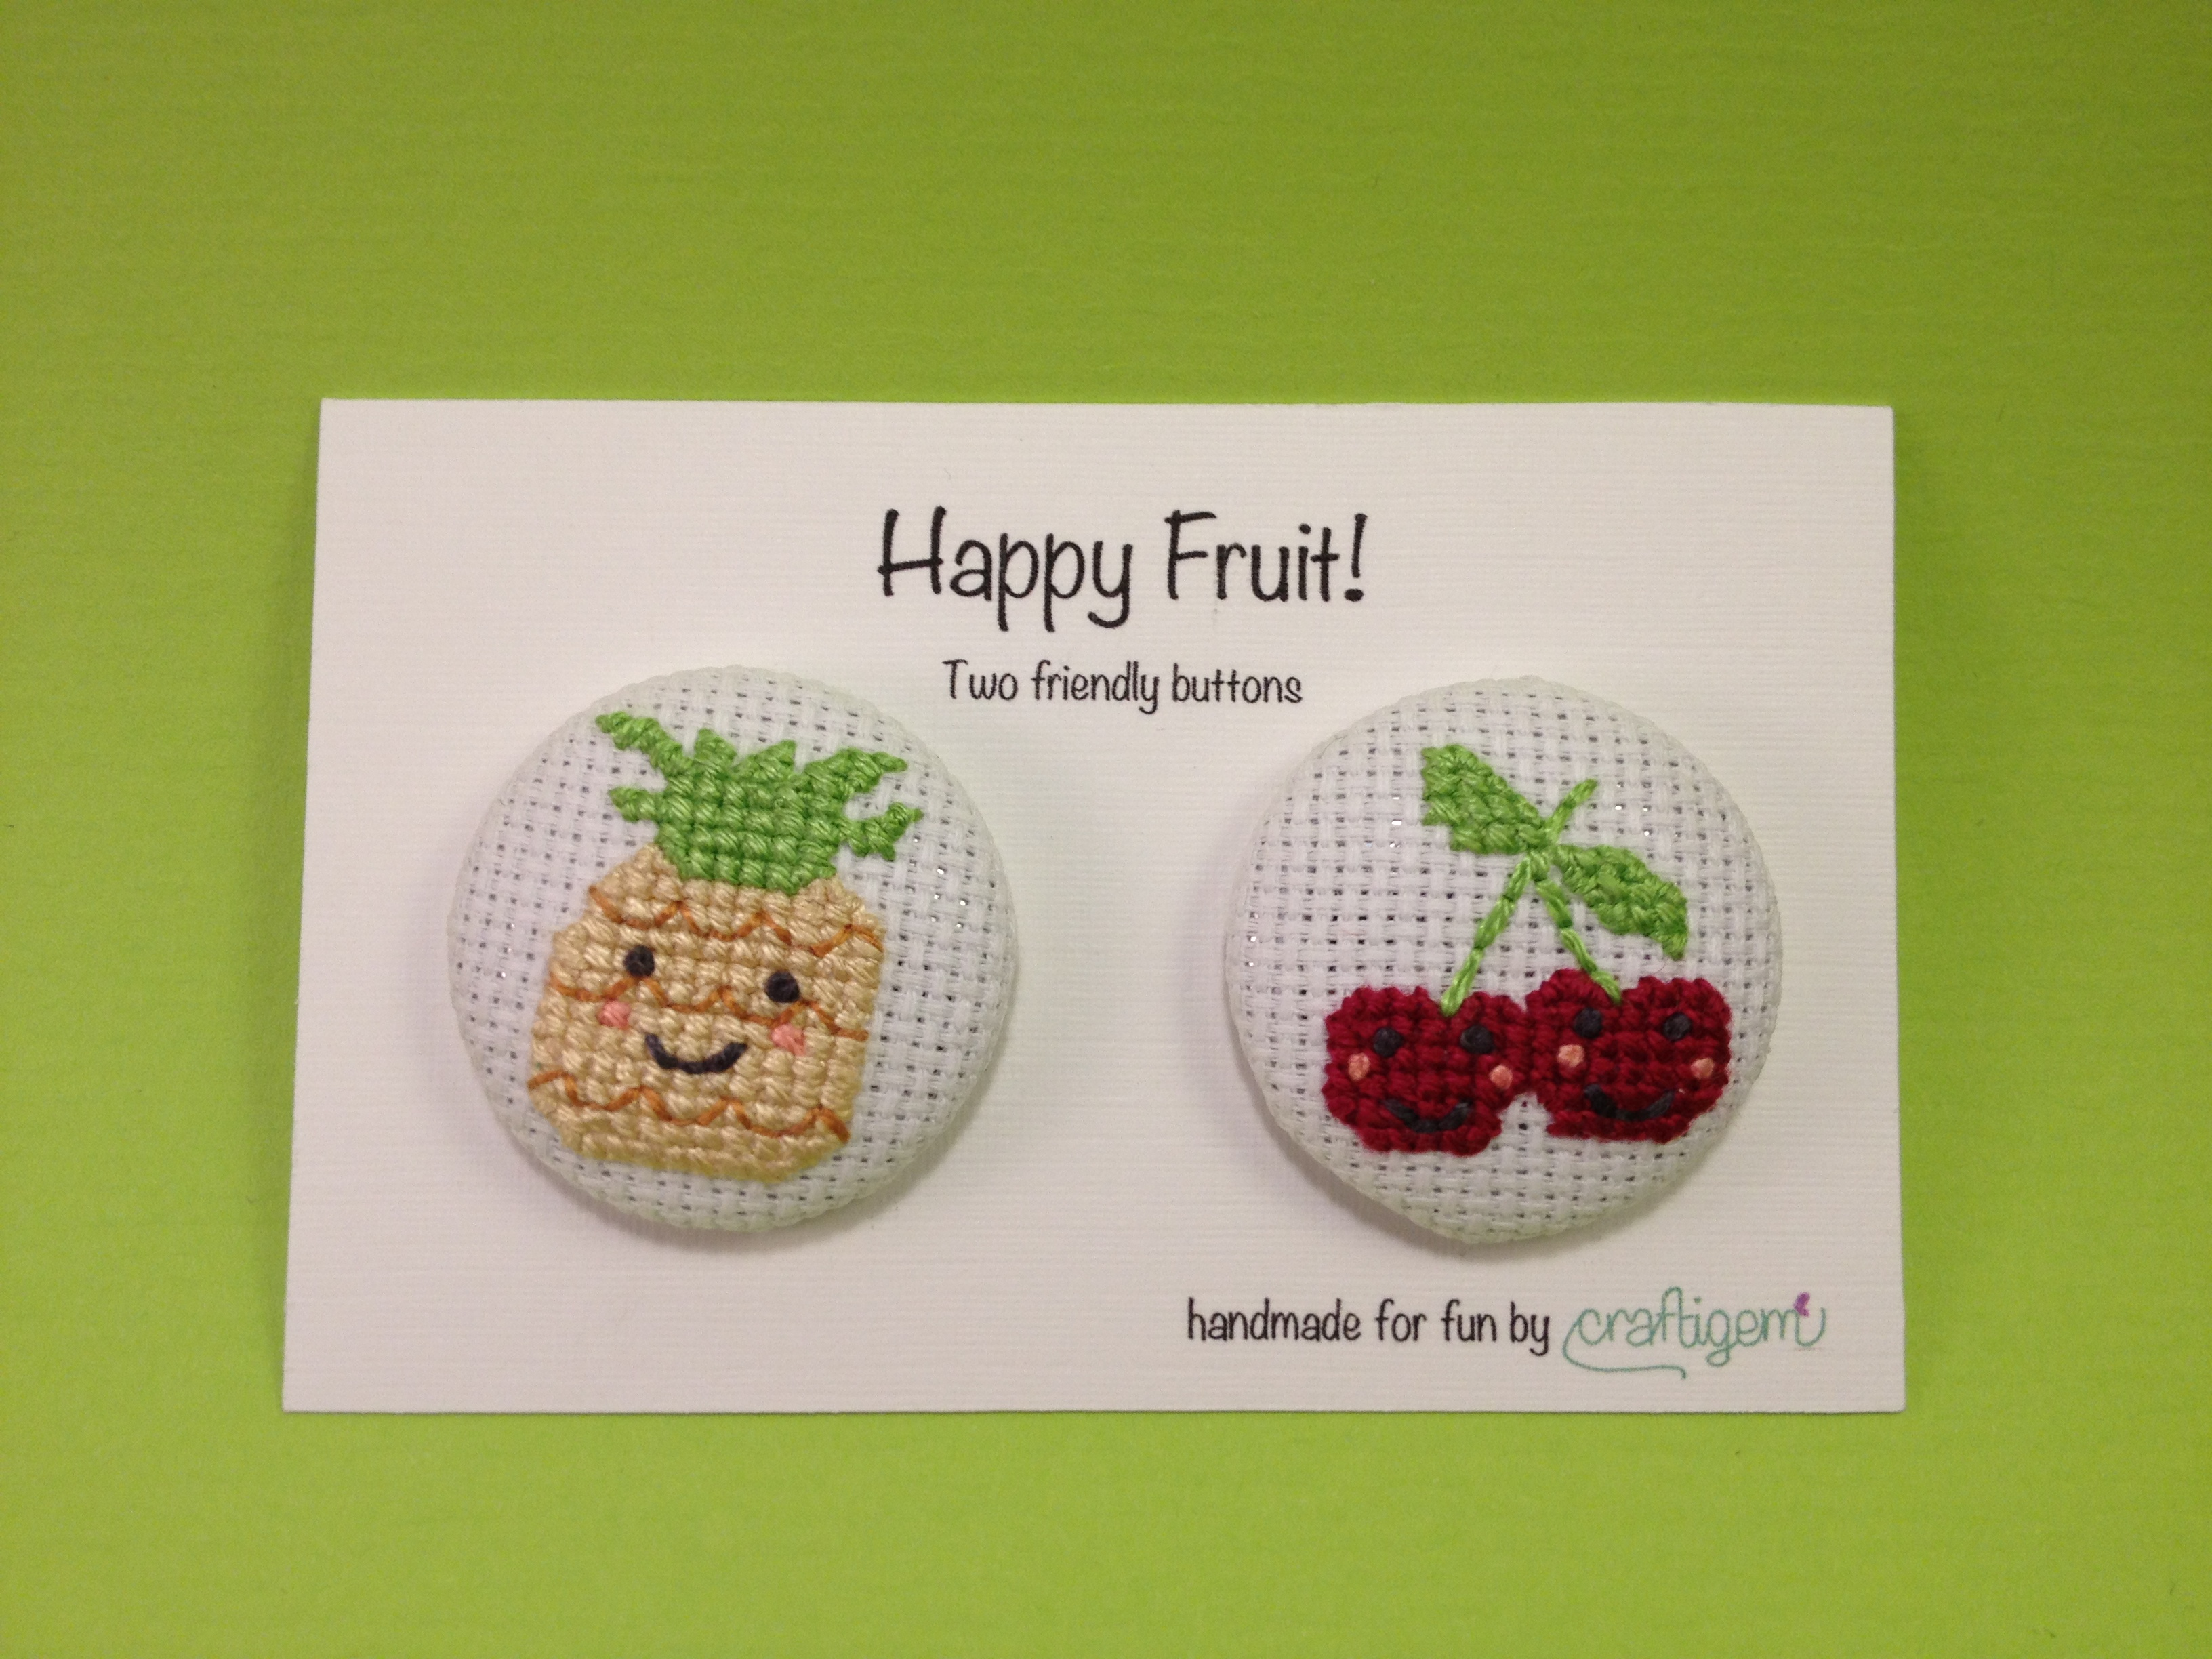 Fruit buttons - pineapple and cherries